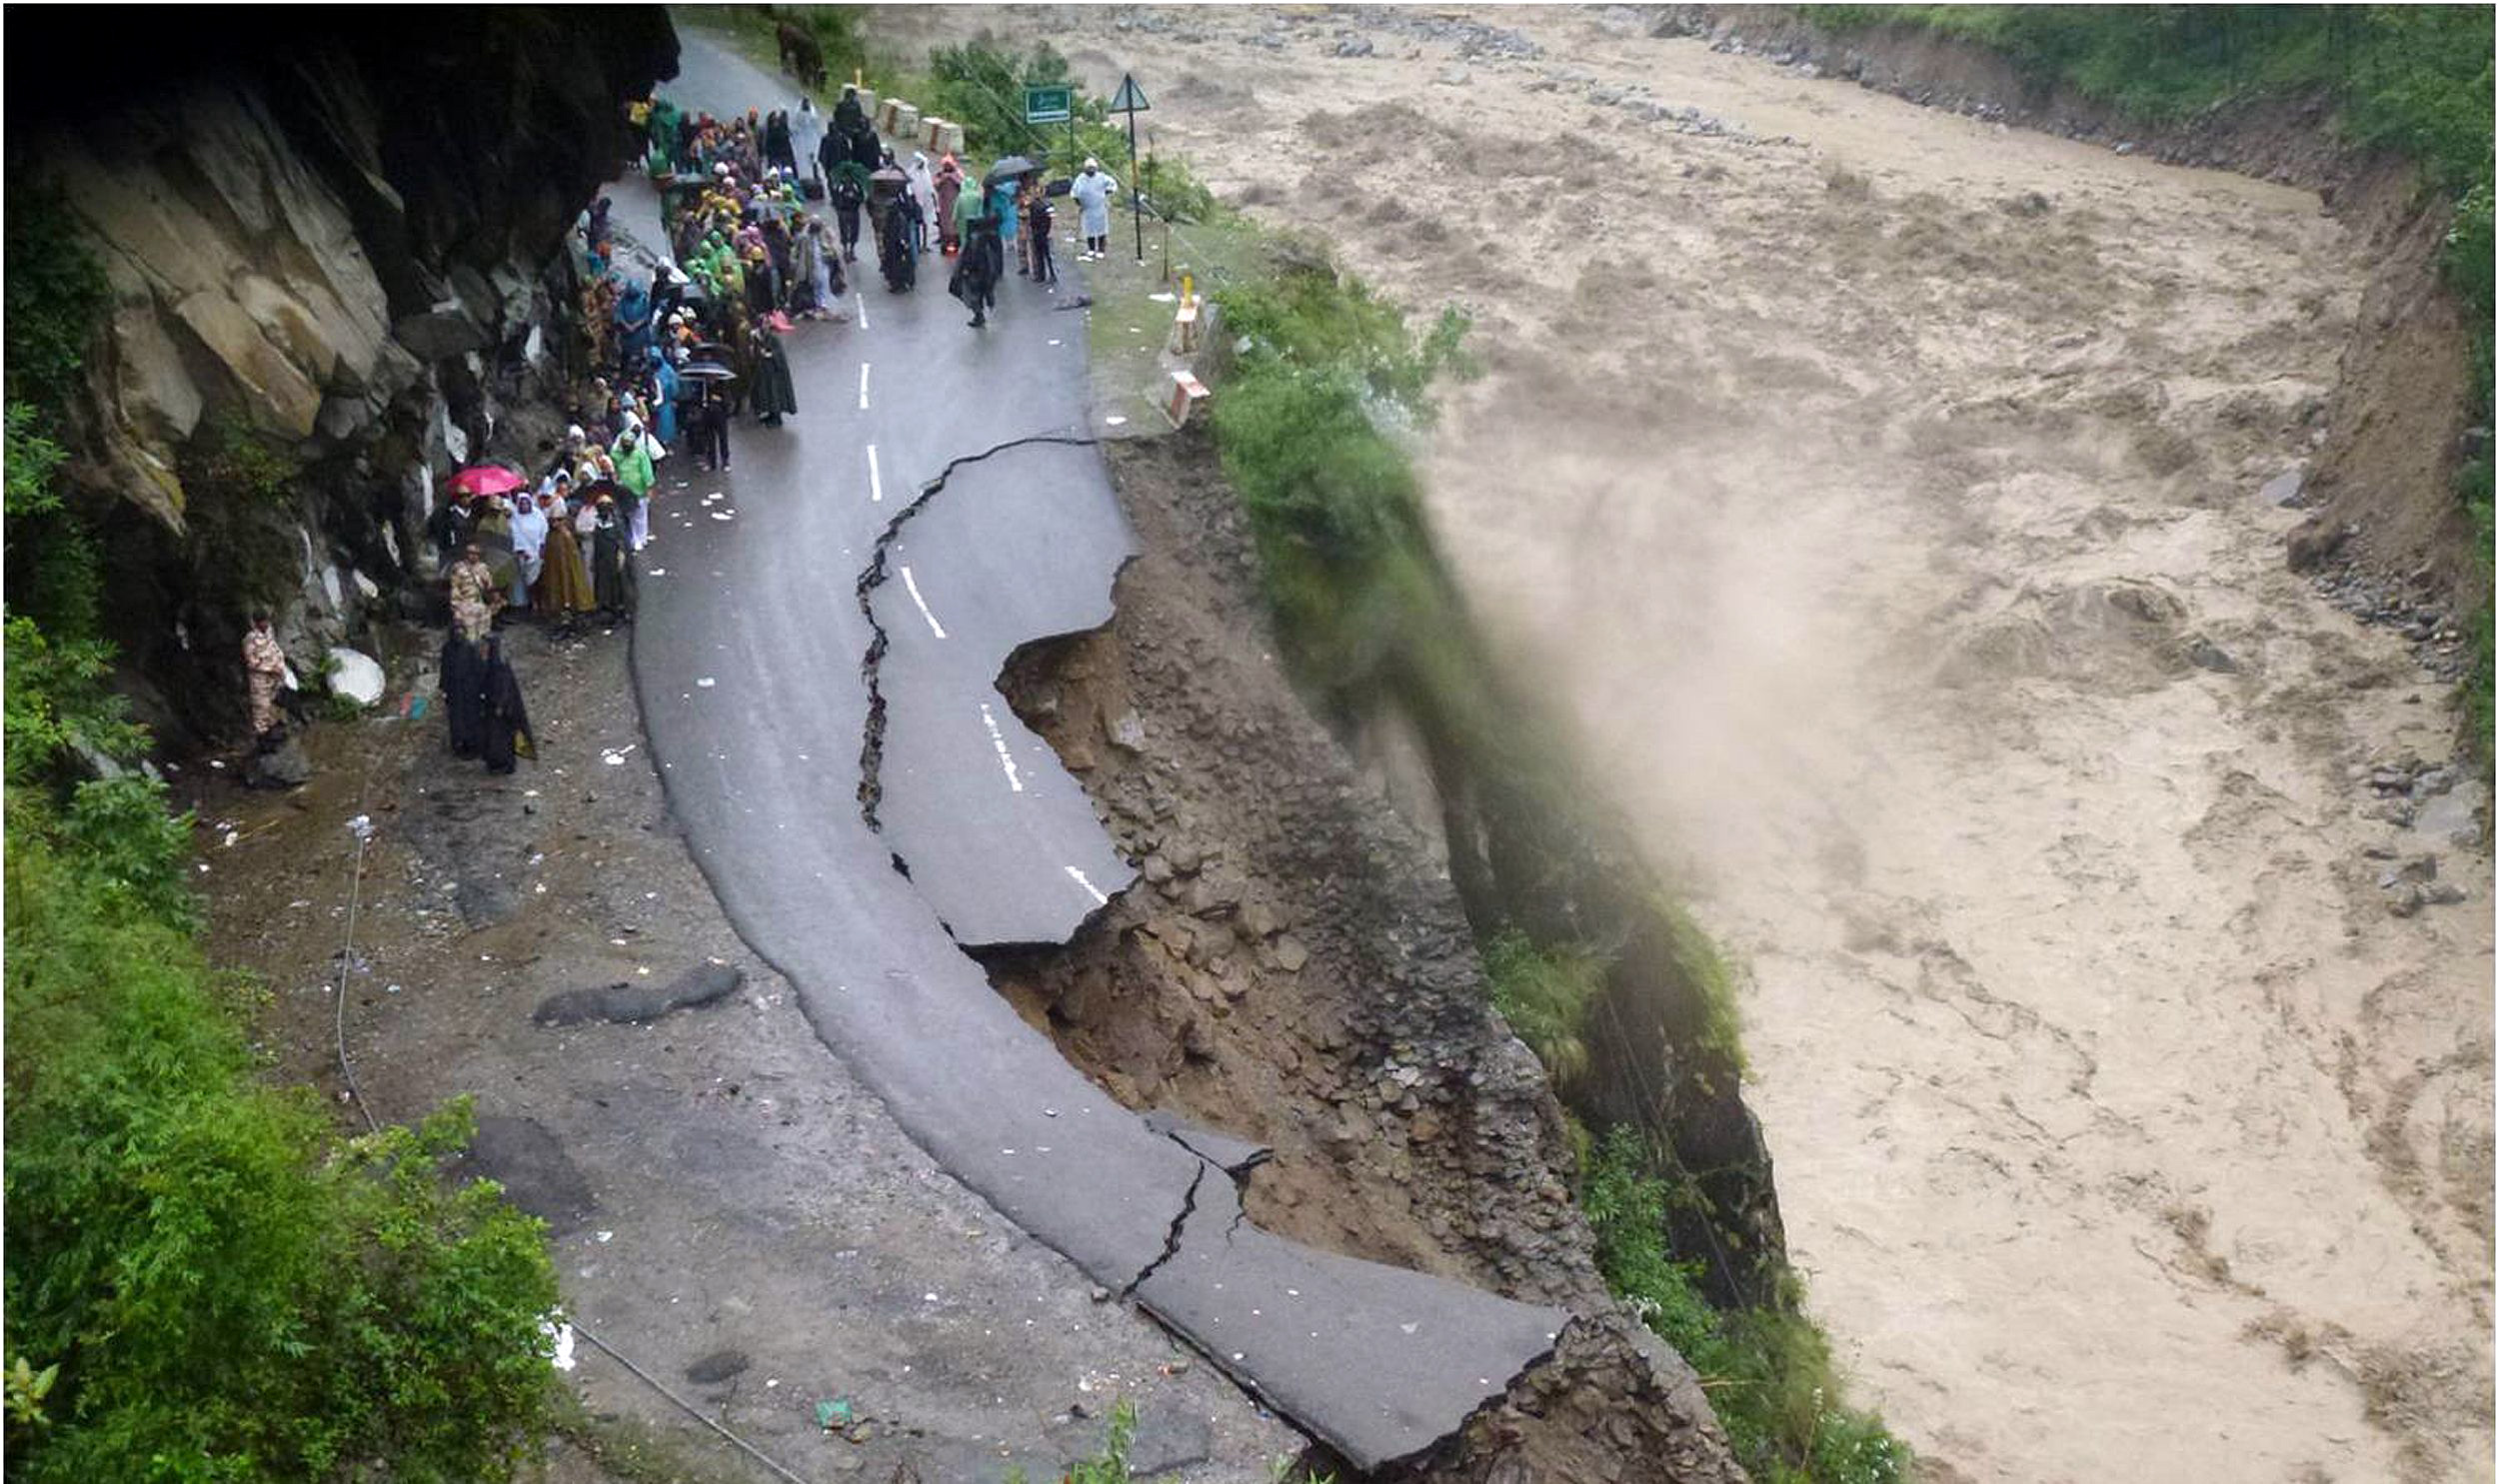 """In this handout photograph released by The Indian Army on June 18, 2013, Indian security personnel supervise residents and travellers as they stand on the remains of a flood damaged road alongside the River Alaknanda in Chamoli district in the northern Indian state of Uttarakhand on June 18, 2013. Torrential rains and flash floods washed away homes and roads in north India, leaving at least feared 60 people dead and thousands stranded, as the annual monsoon hit the country earlier than normal, officials said. Authorities called in military helicopters to try to rescue residents and pilgrims cut off by rising rivers and landslides triggered by more than three days of rain in the Himalayan state of Uttarakhand, officials said. -----EDITORS NOTE---- RESTRICTED TO EDITORIAL USE - MANDATORY CREDIT """"AFP PHOTO / INDIAN ARMY"""" - NO MARKETING NO ADVERTISING CAMPAIGNS - DISTRIBUTED AS A SERVICE TO CLIENTS"""